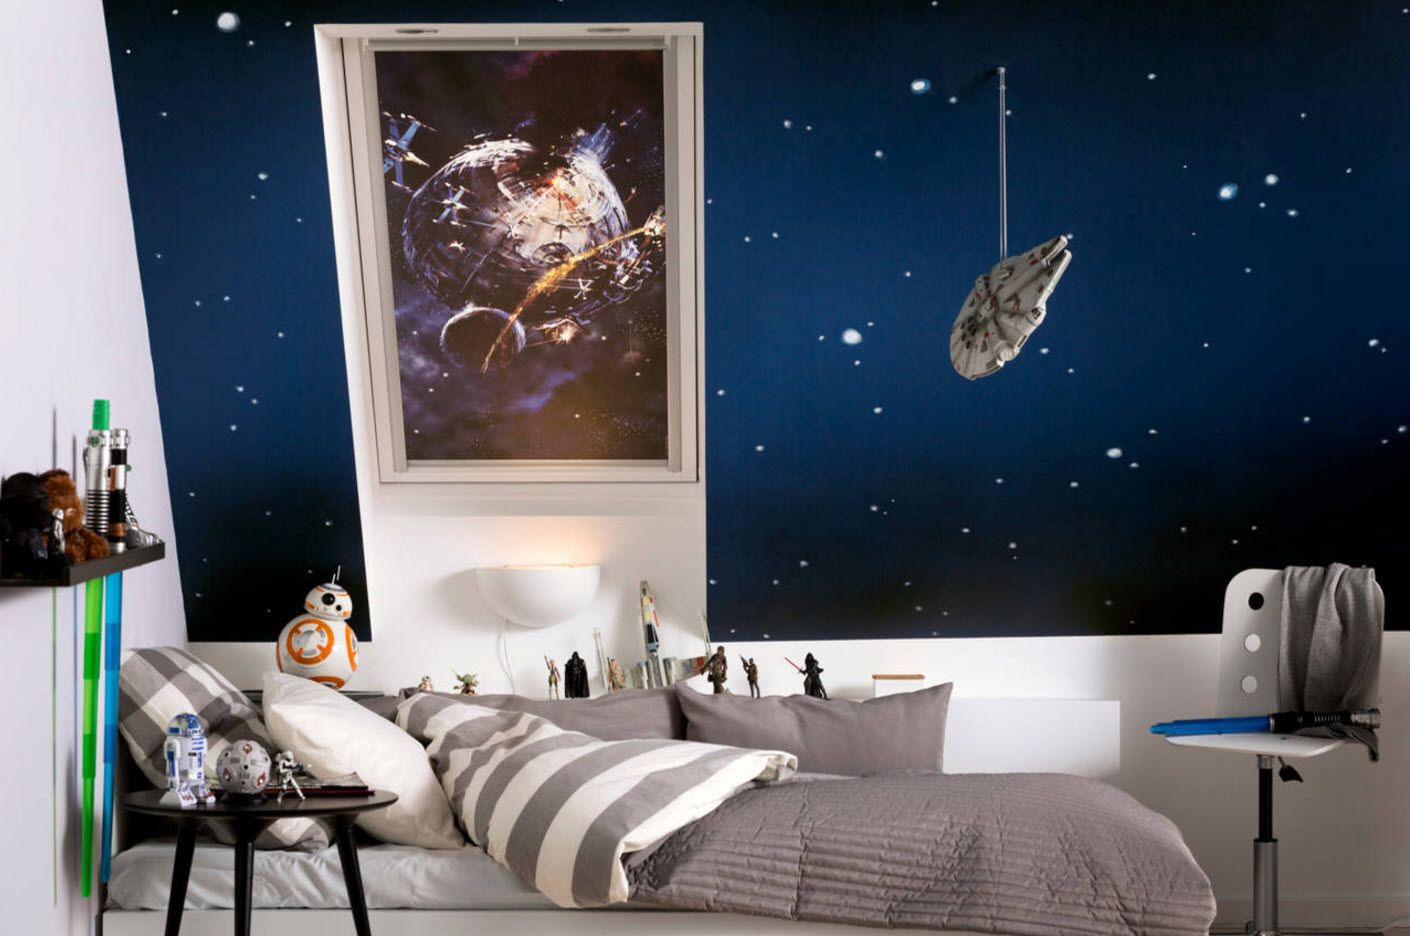 Space theme for kids' room